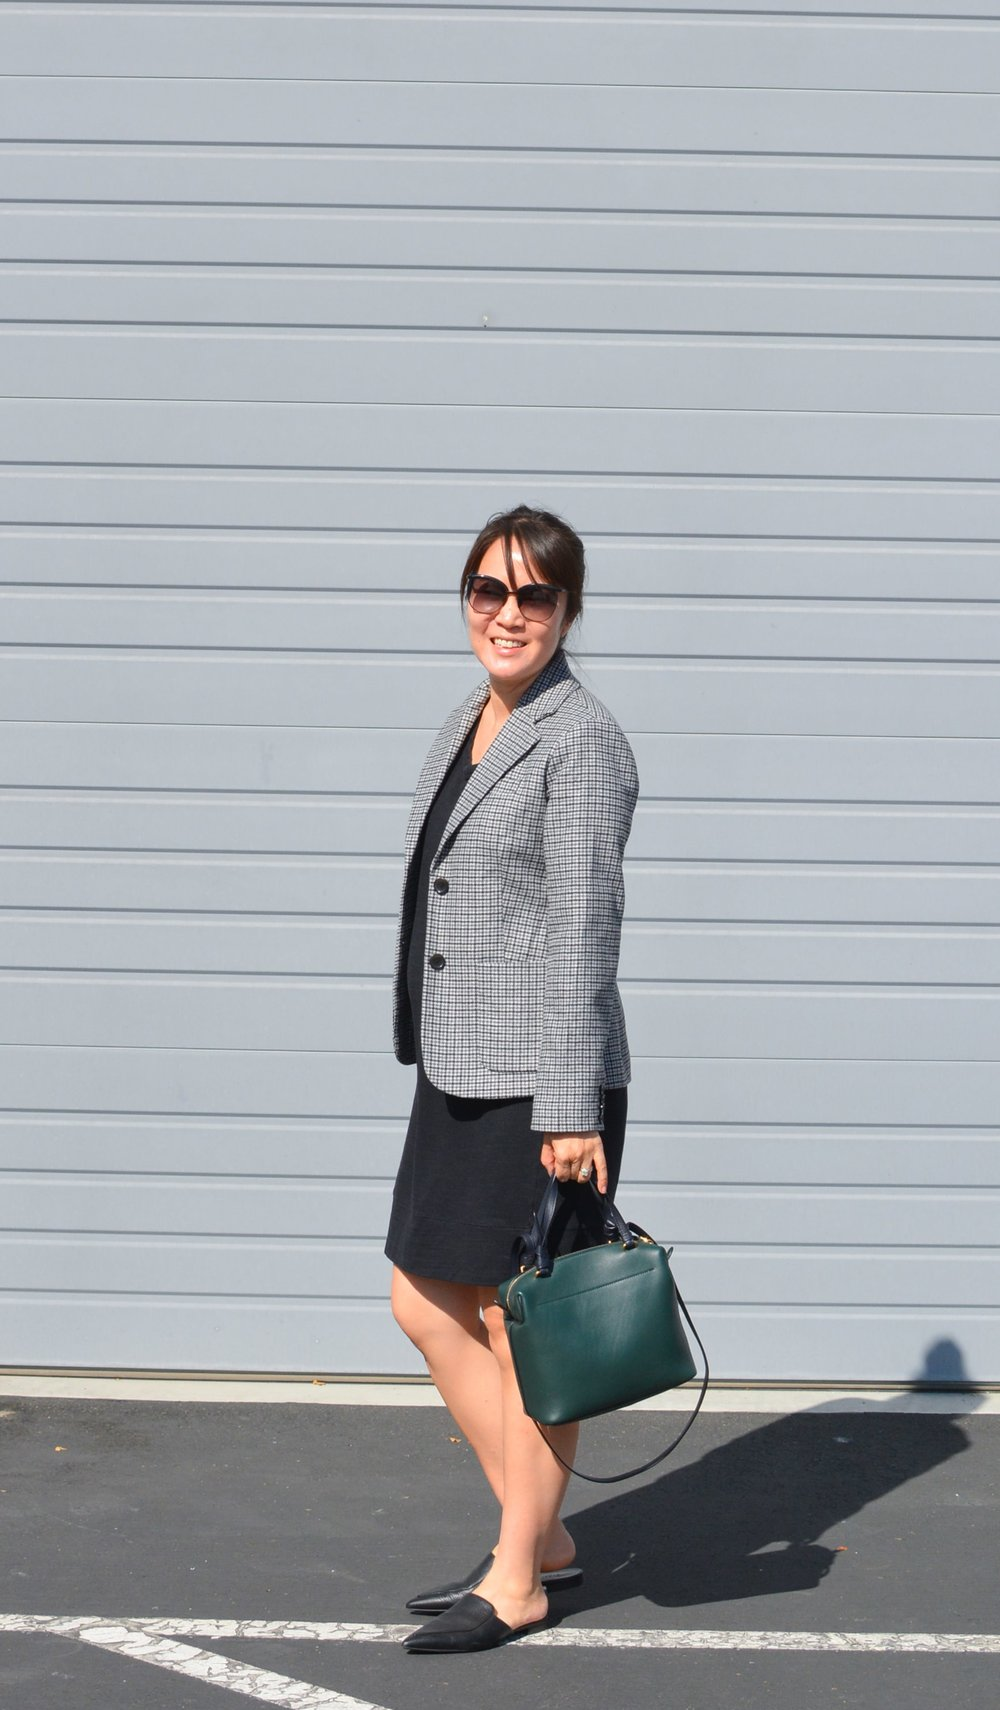 Everlane Review The Wool Academy Blazer (2 of 6)-min.jpg